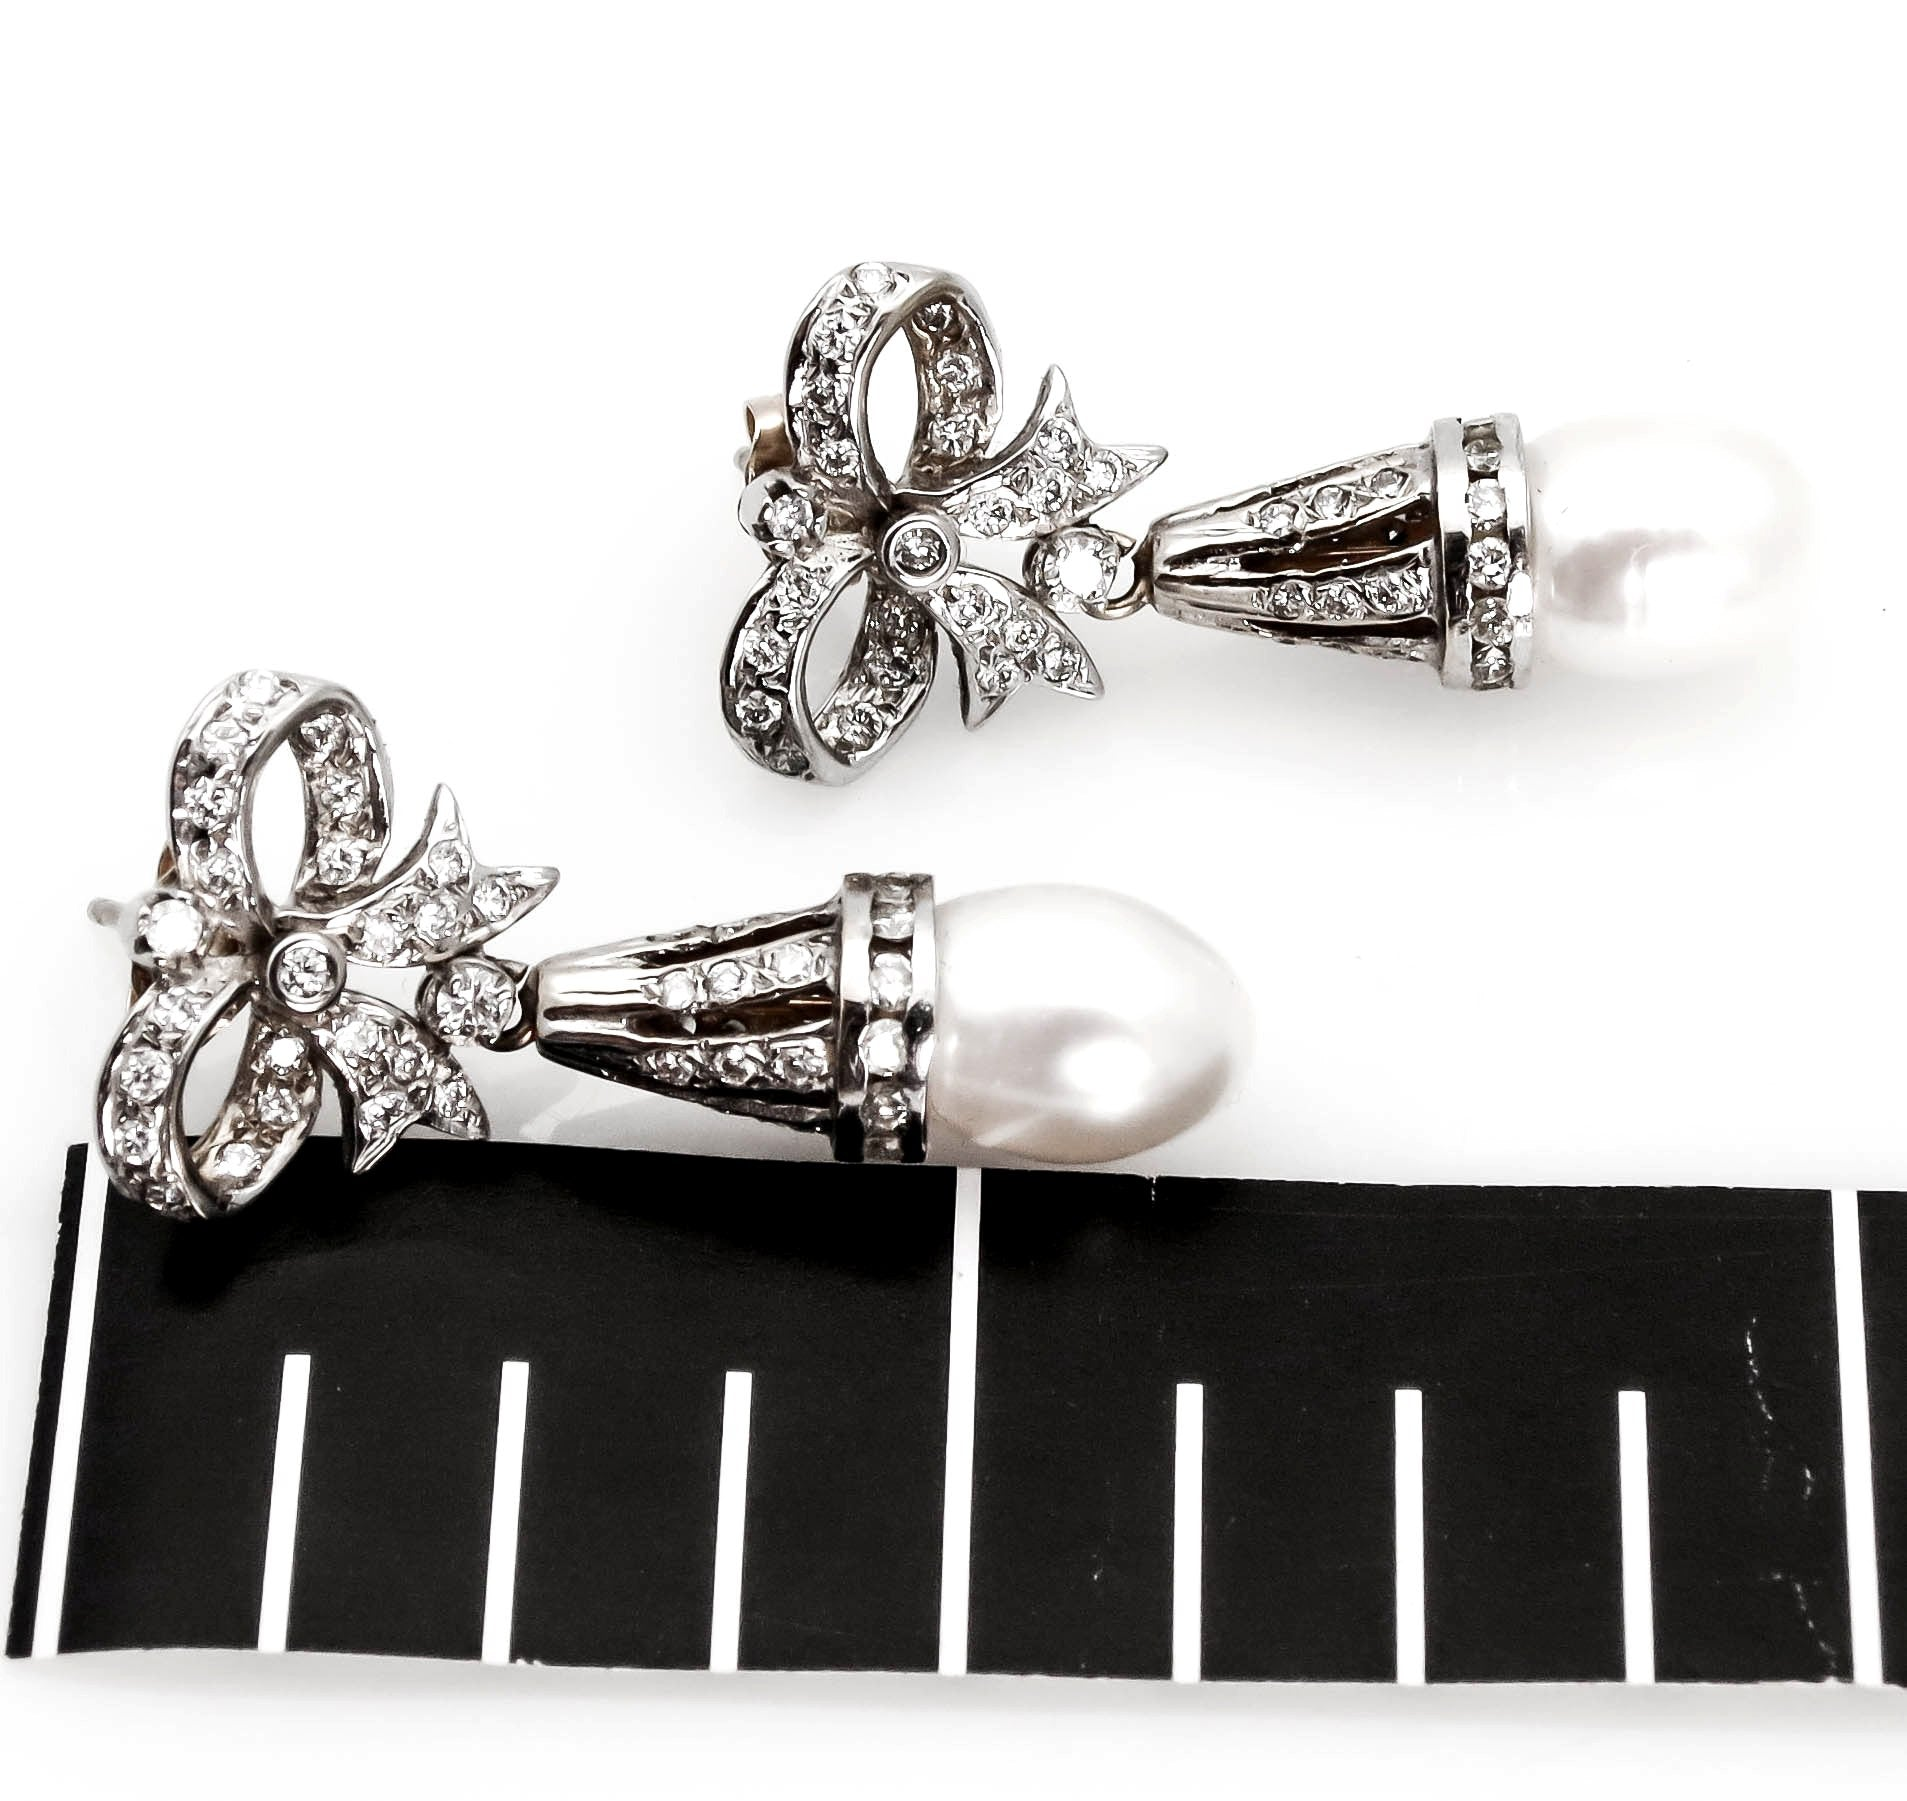 14k White Gold Pearls & Diamonds Earrings, Bow Earrings.